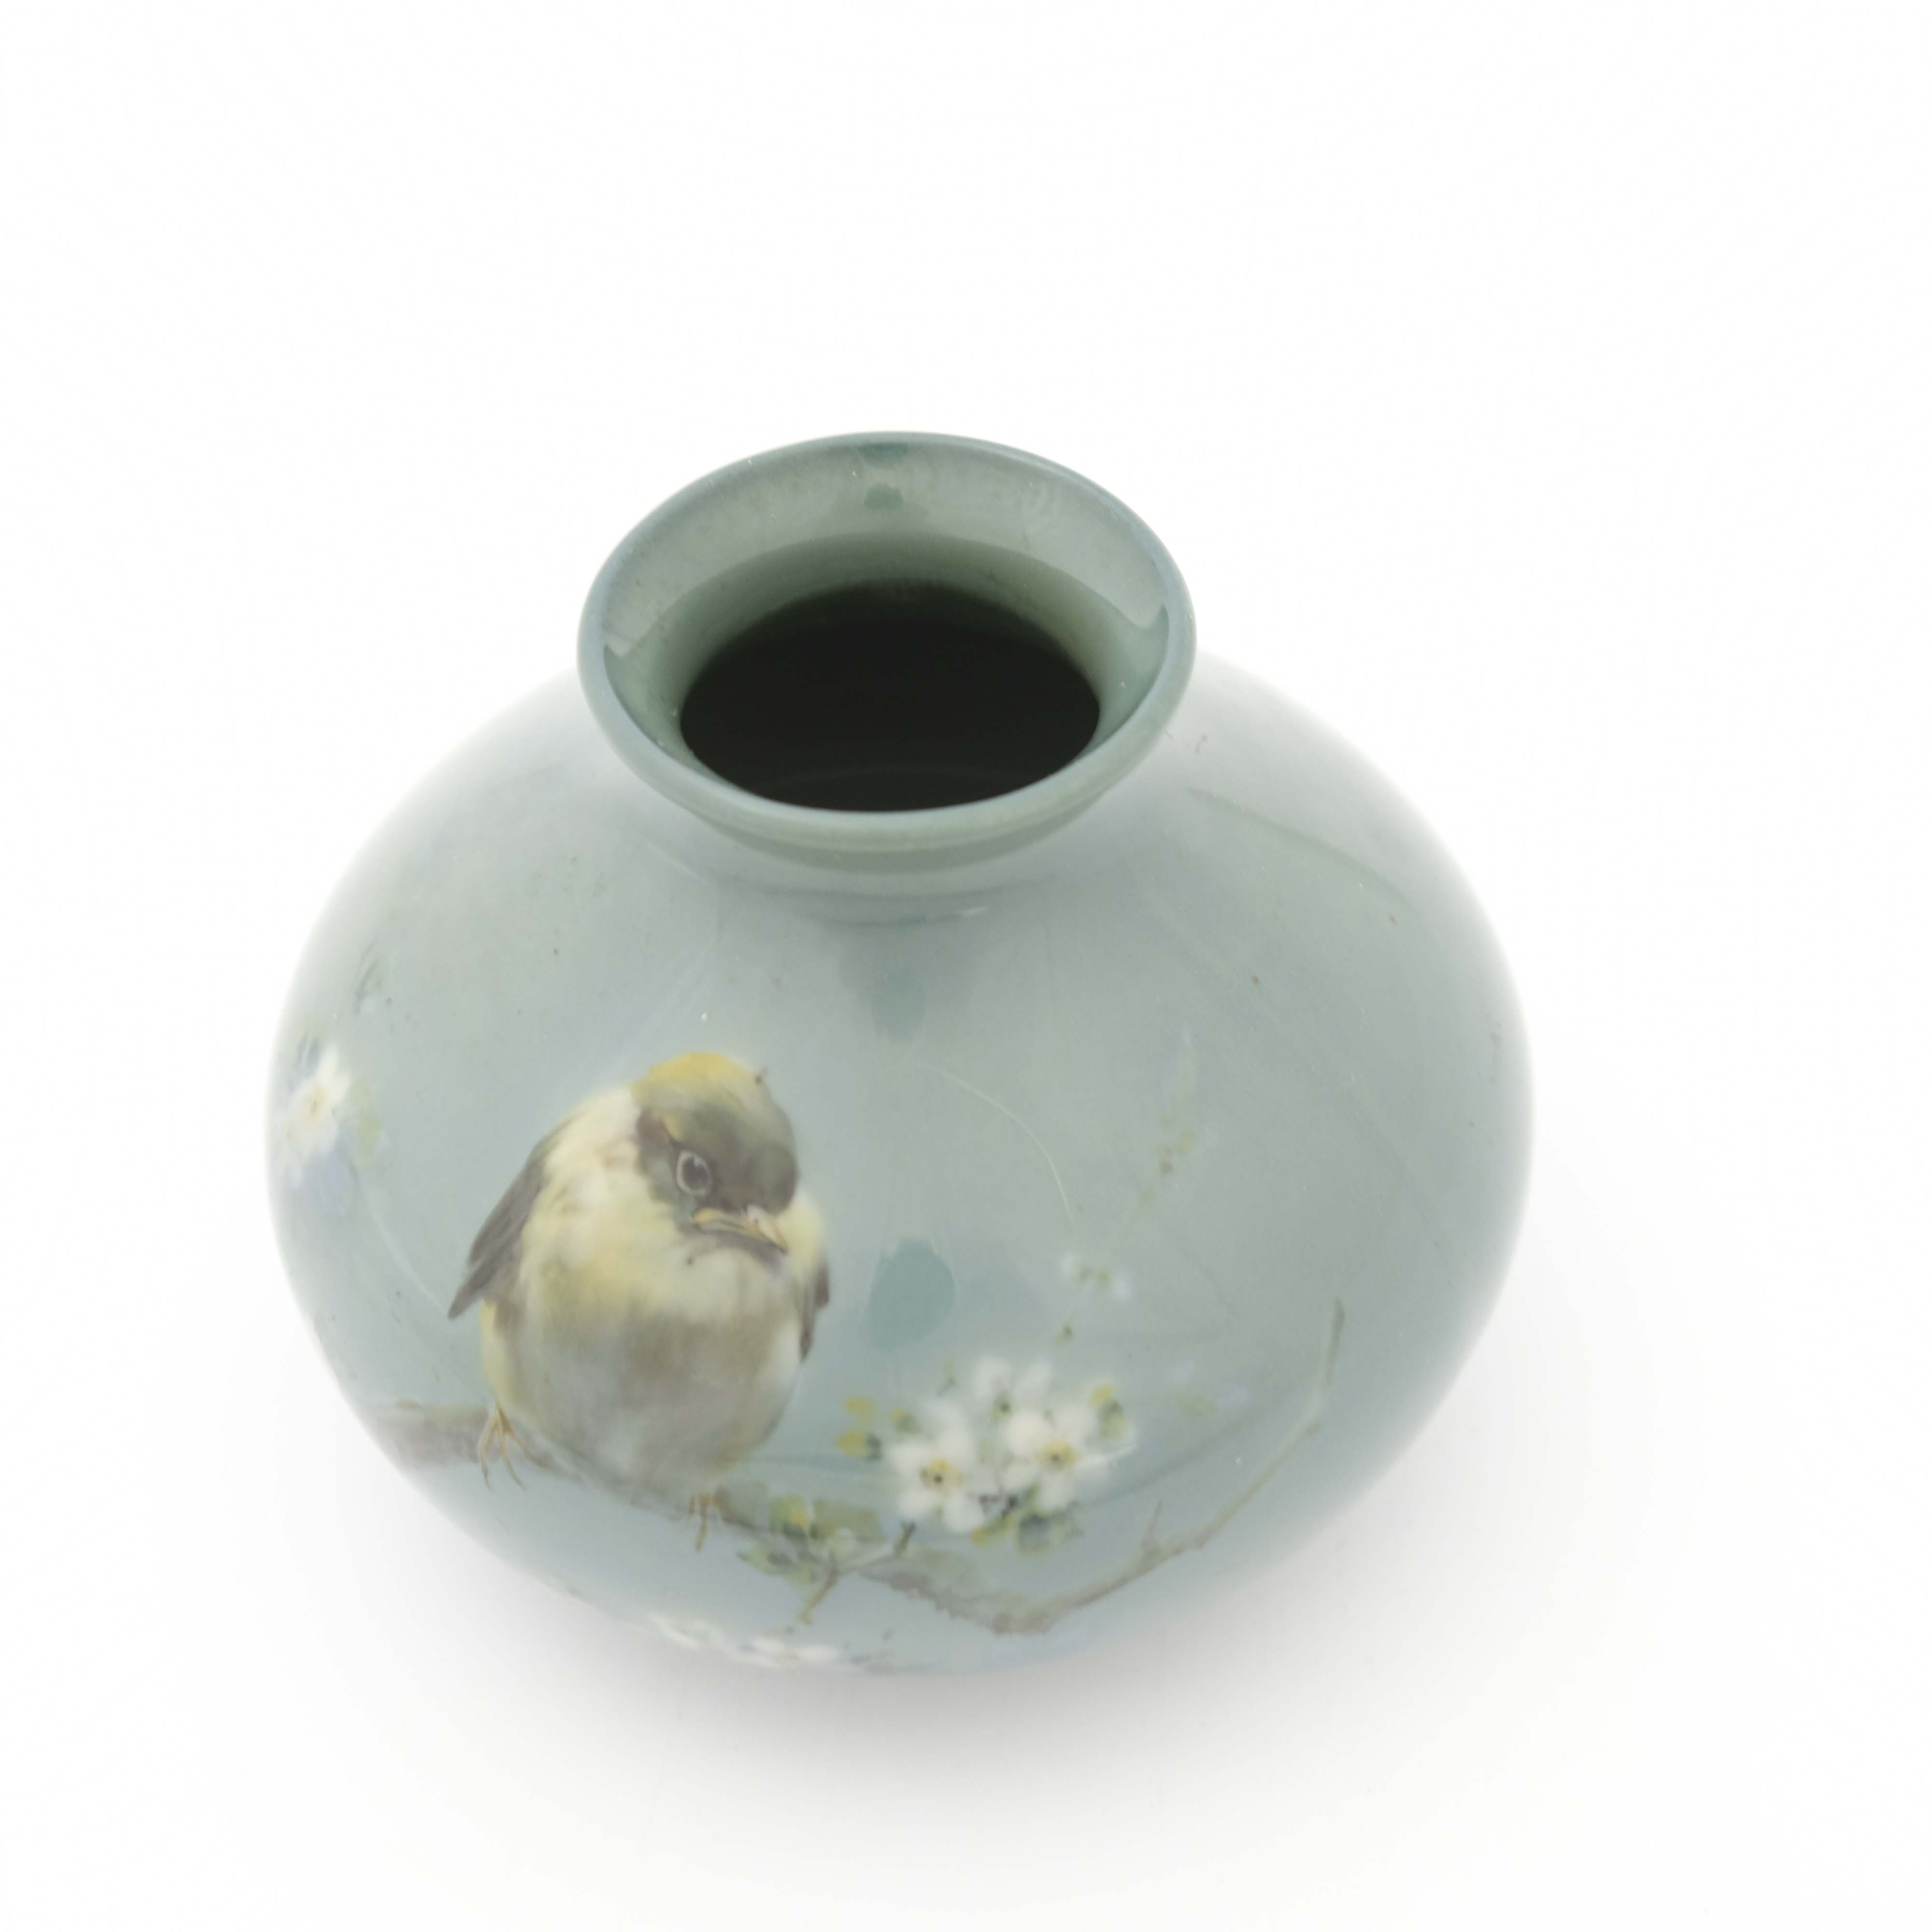 Harry Allen for Royal Doulton, a Titanian Young Fl - Image 5 of 6